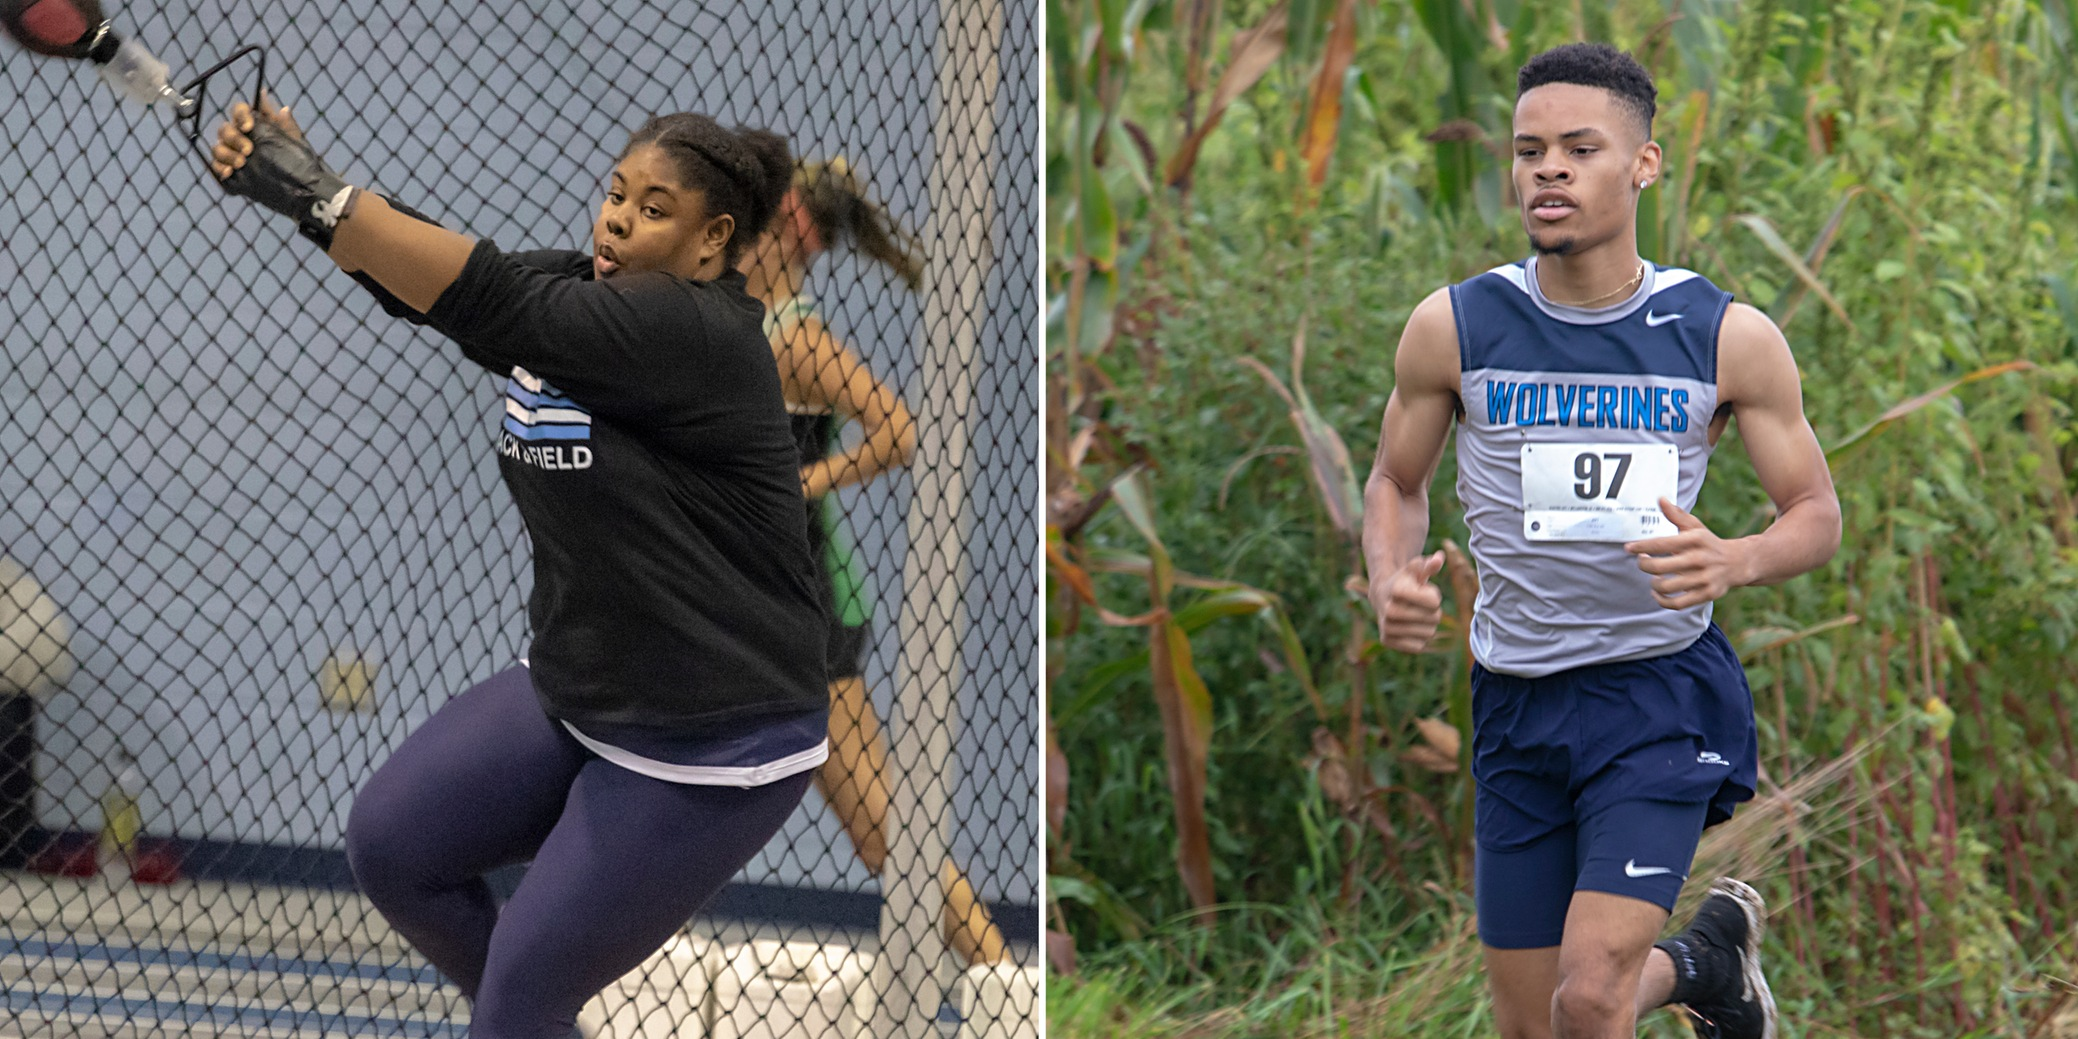 Track & Field opens indoor season at Navy